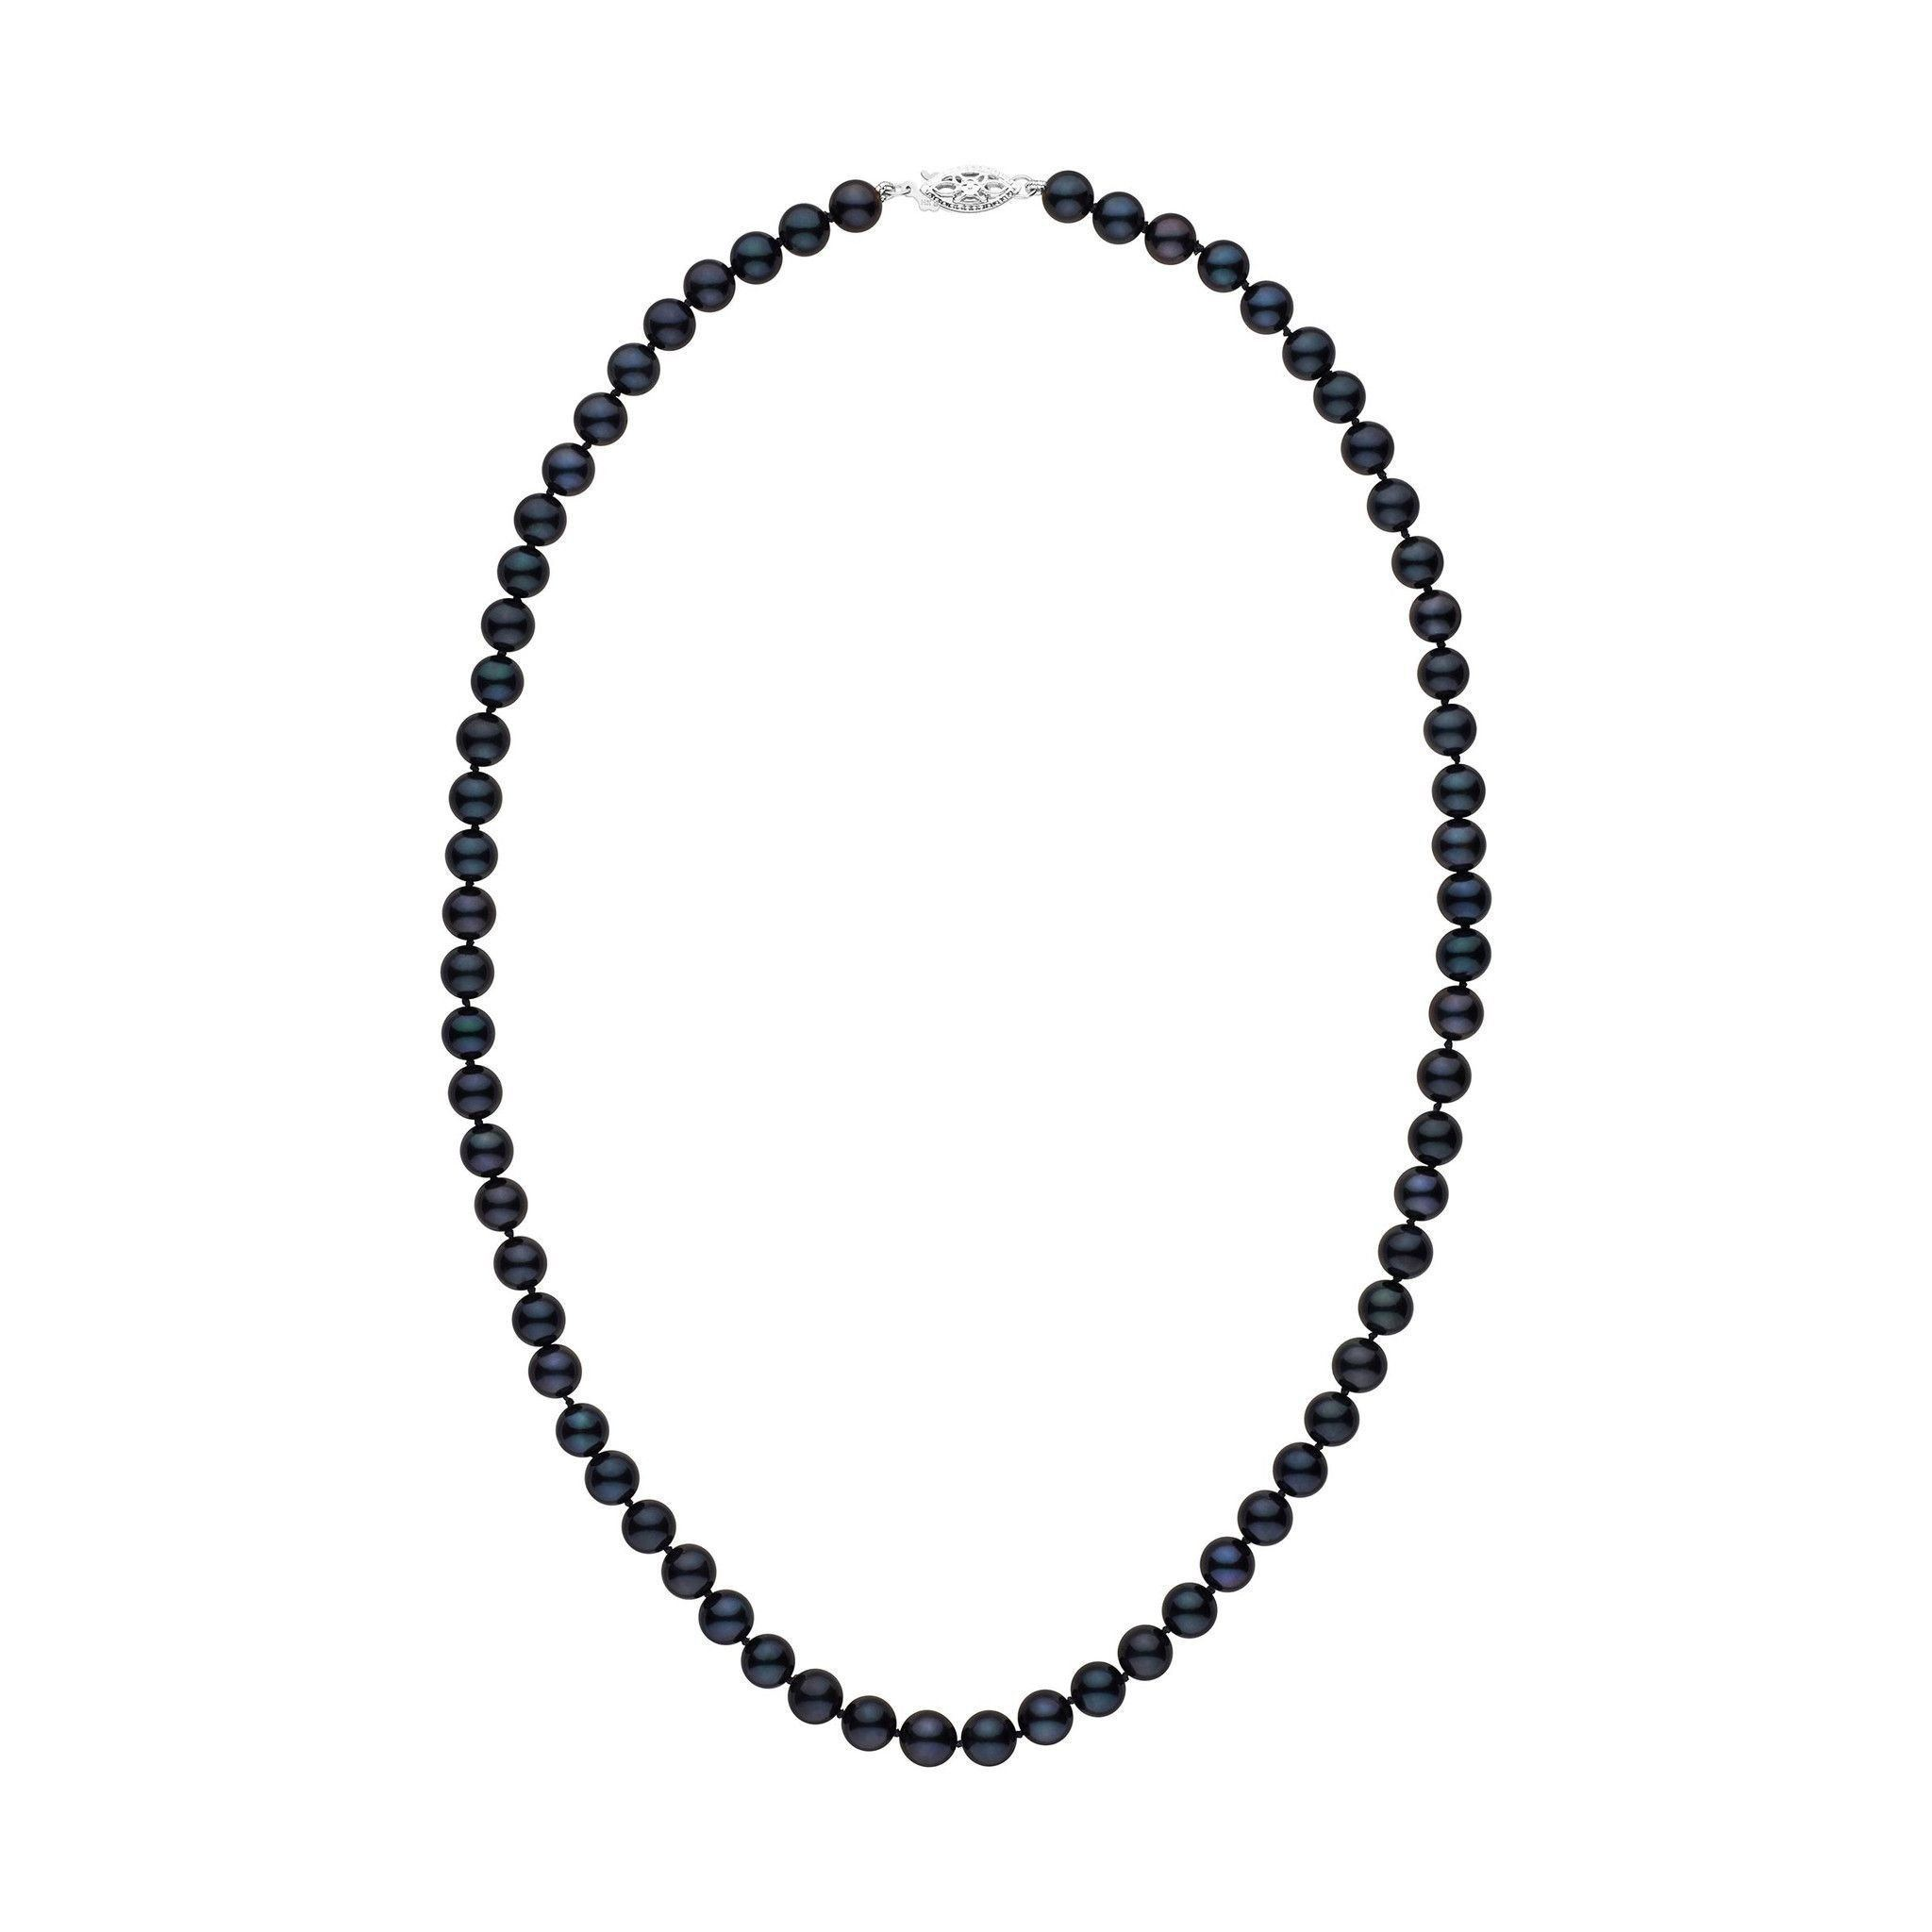 6.0-6.5 mm 18 Inch AA+ Black Akoya Pearl Necklace